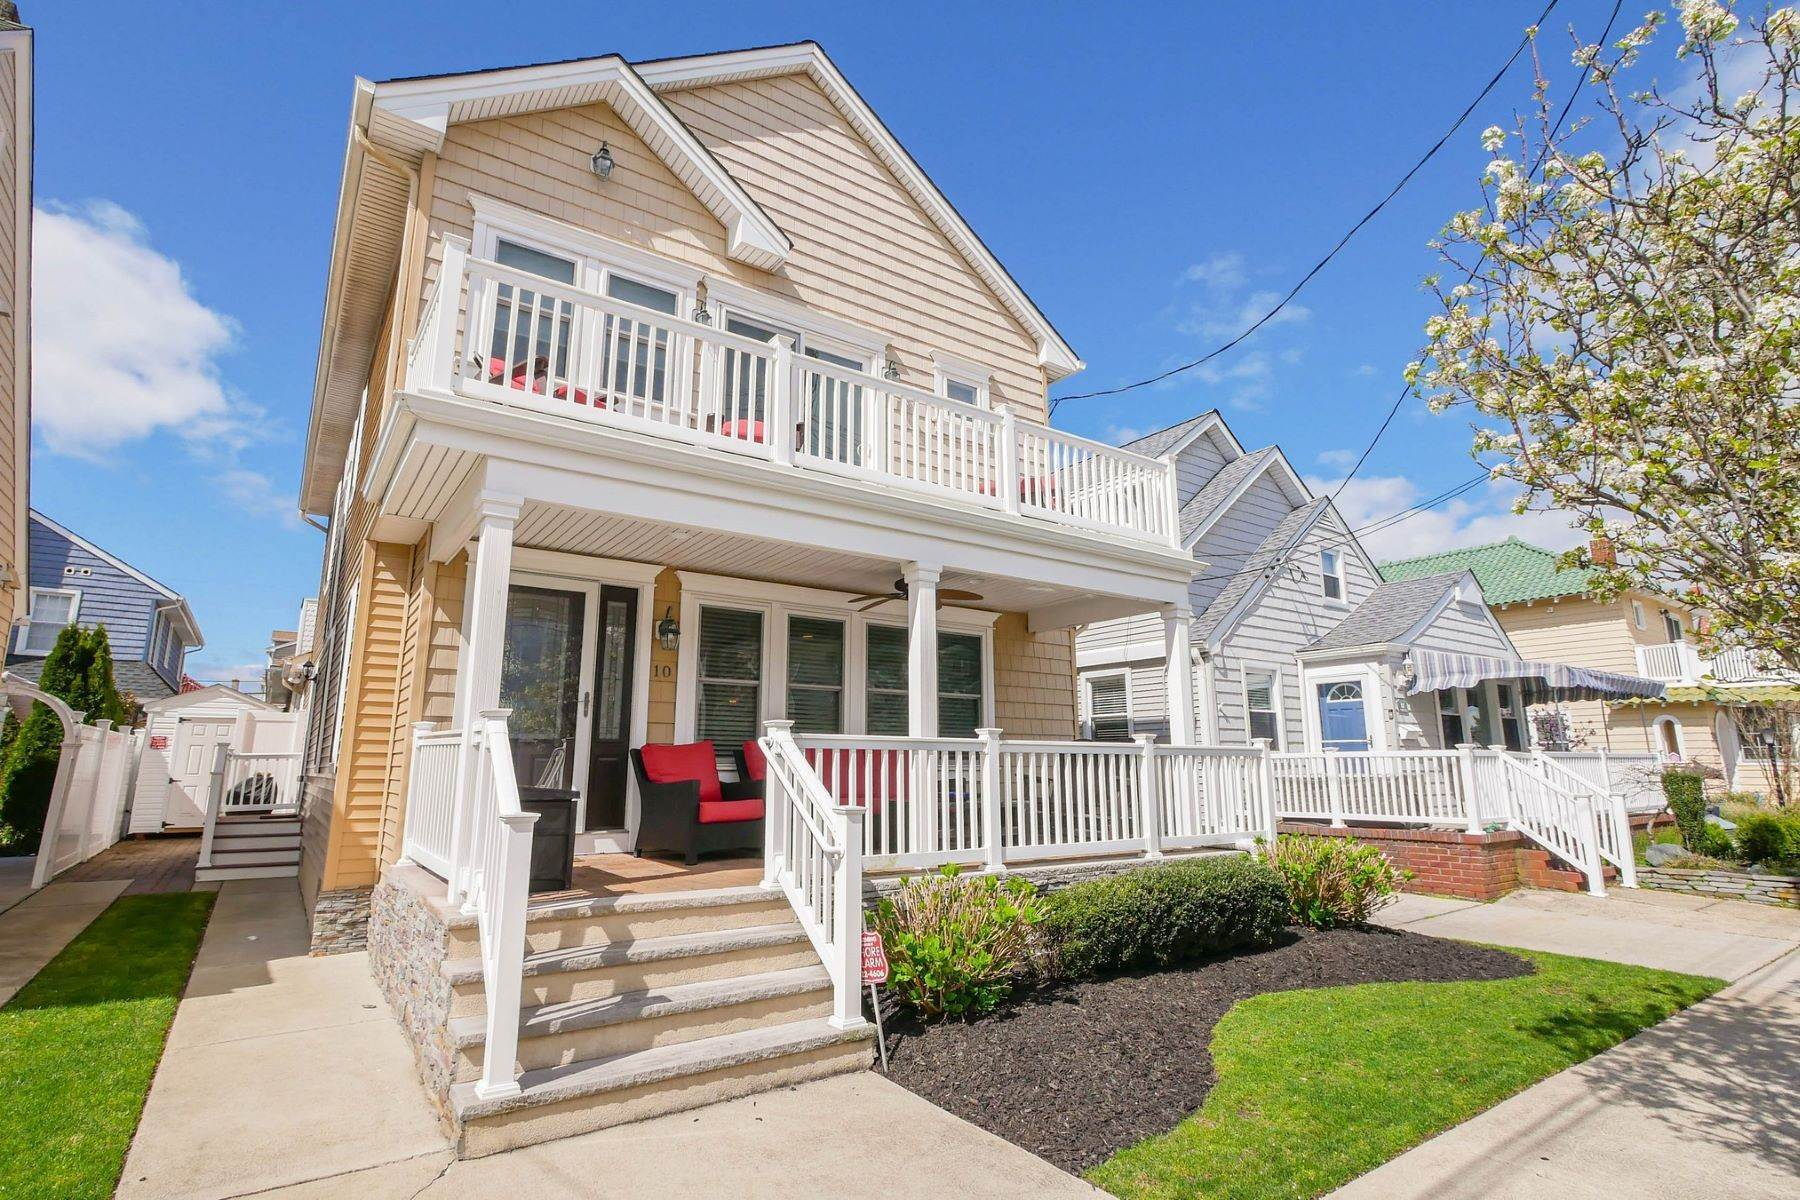 Single Family Homes for Sale at 10 N Exeter Avenue Margate, New Jersey 08402 United States